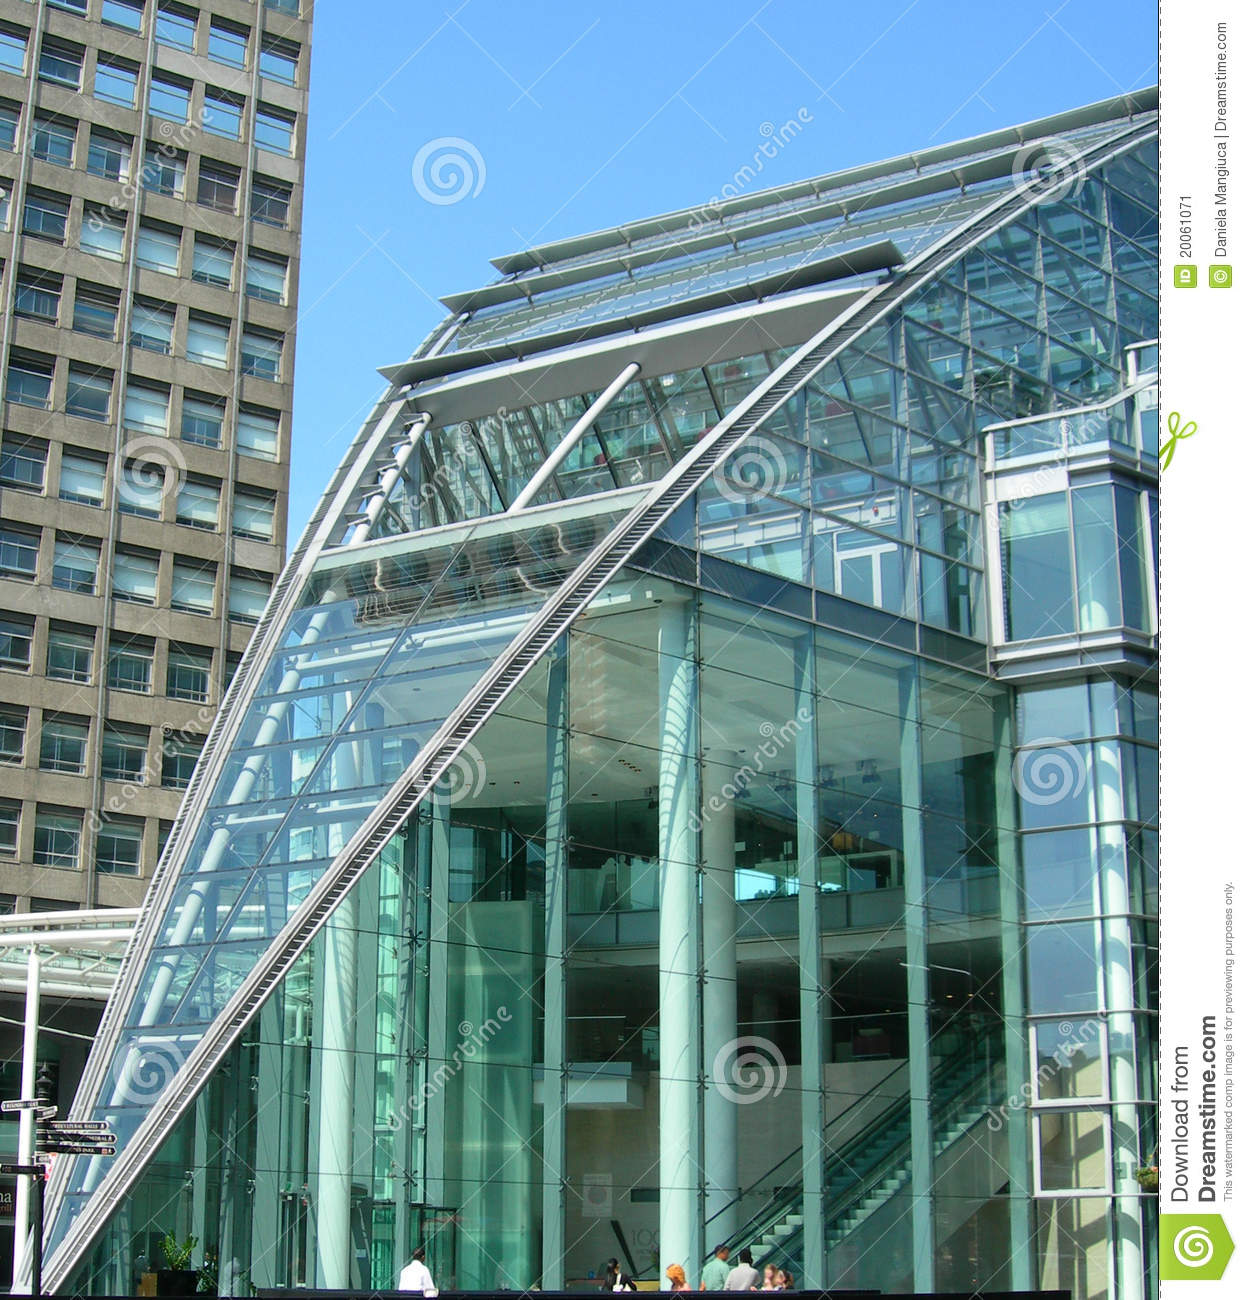 Glass Building In London UK Stock Image  Image of kingdom exterior 20061071